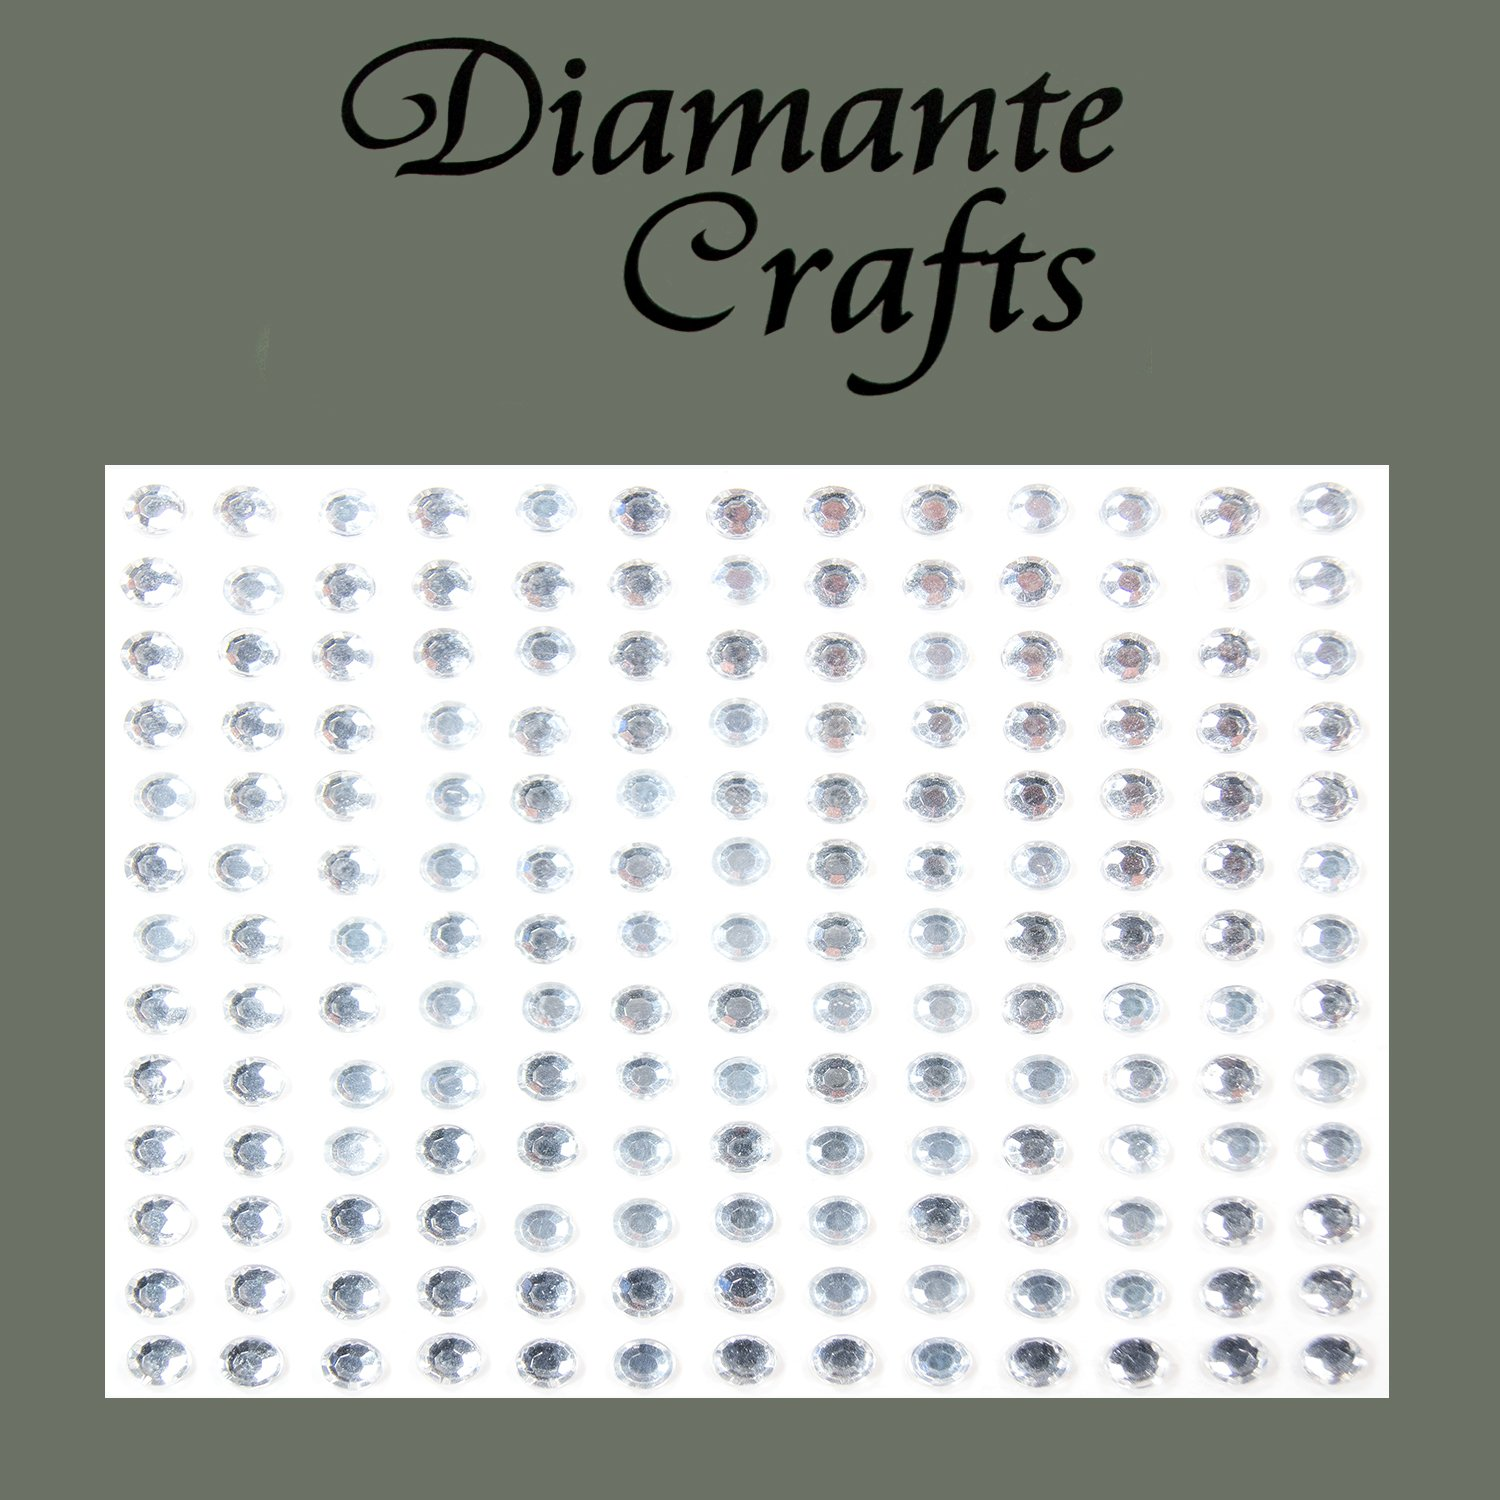 169 x 4mm Clear Diamante Self Adhesive Rhinestone Body Vajazzle Gems - created exclusively for Diamante Crafts